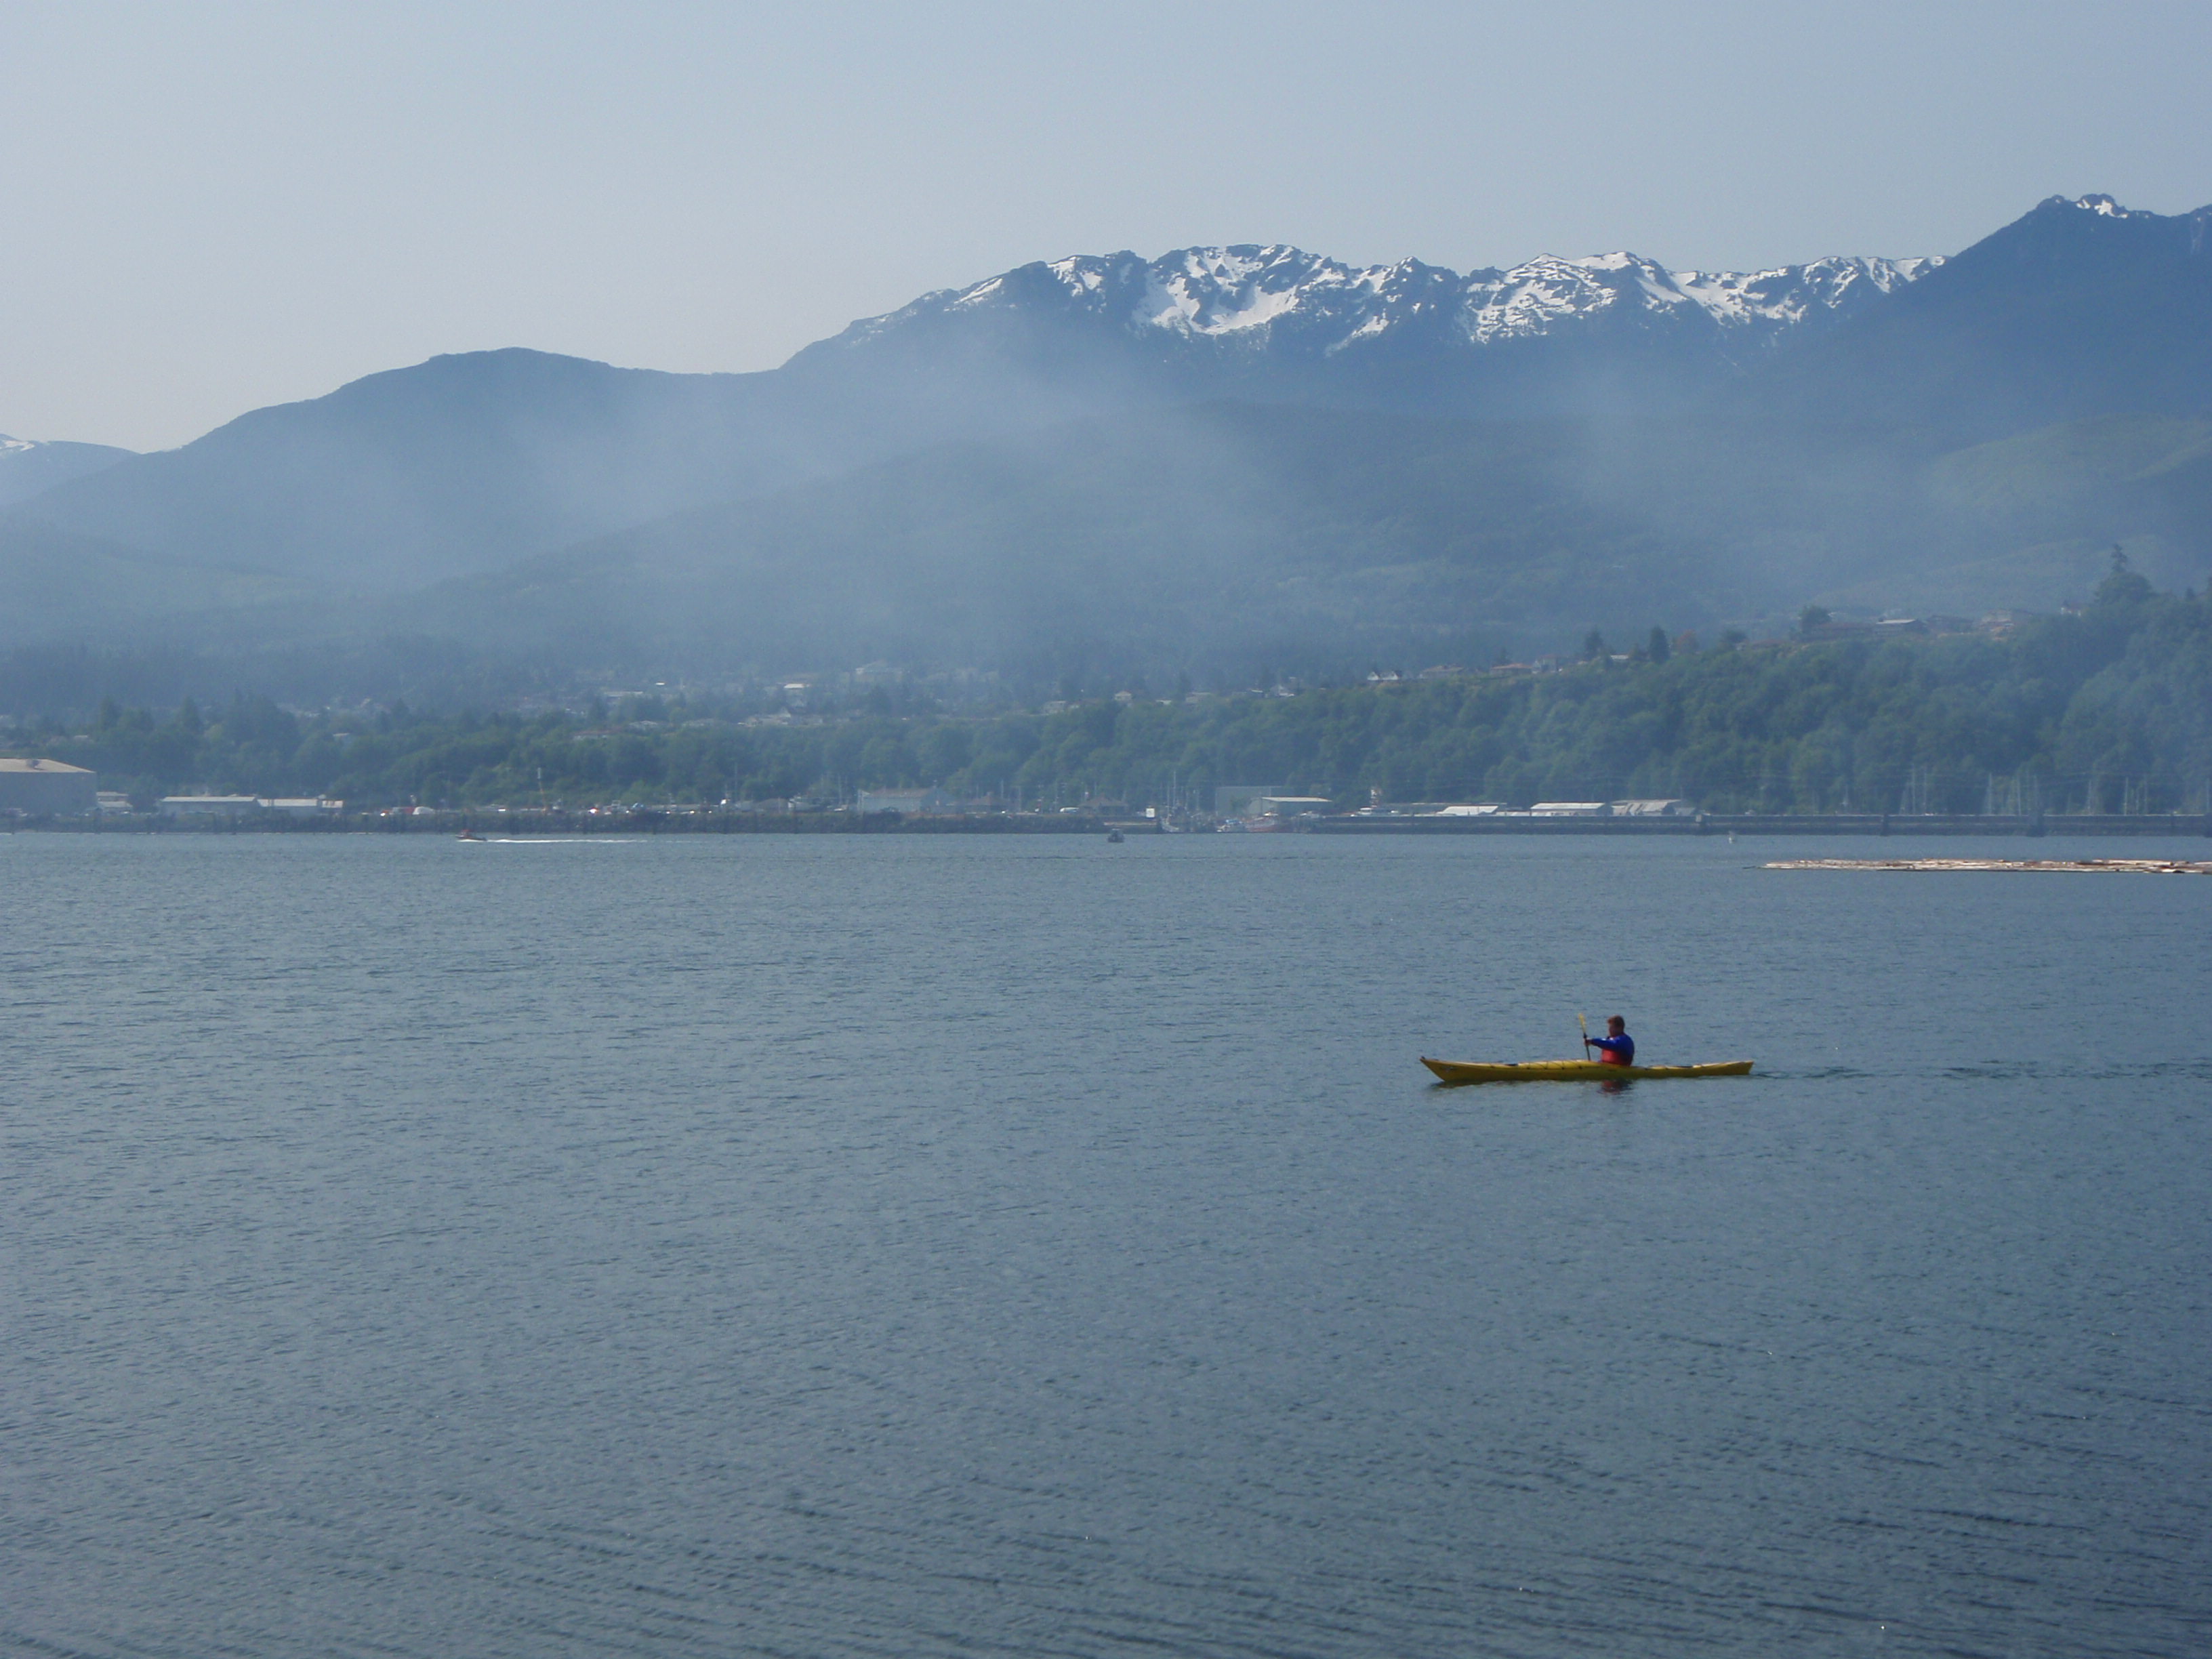 A Short Guide to Kayaking the Port Angeles Harbor